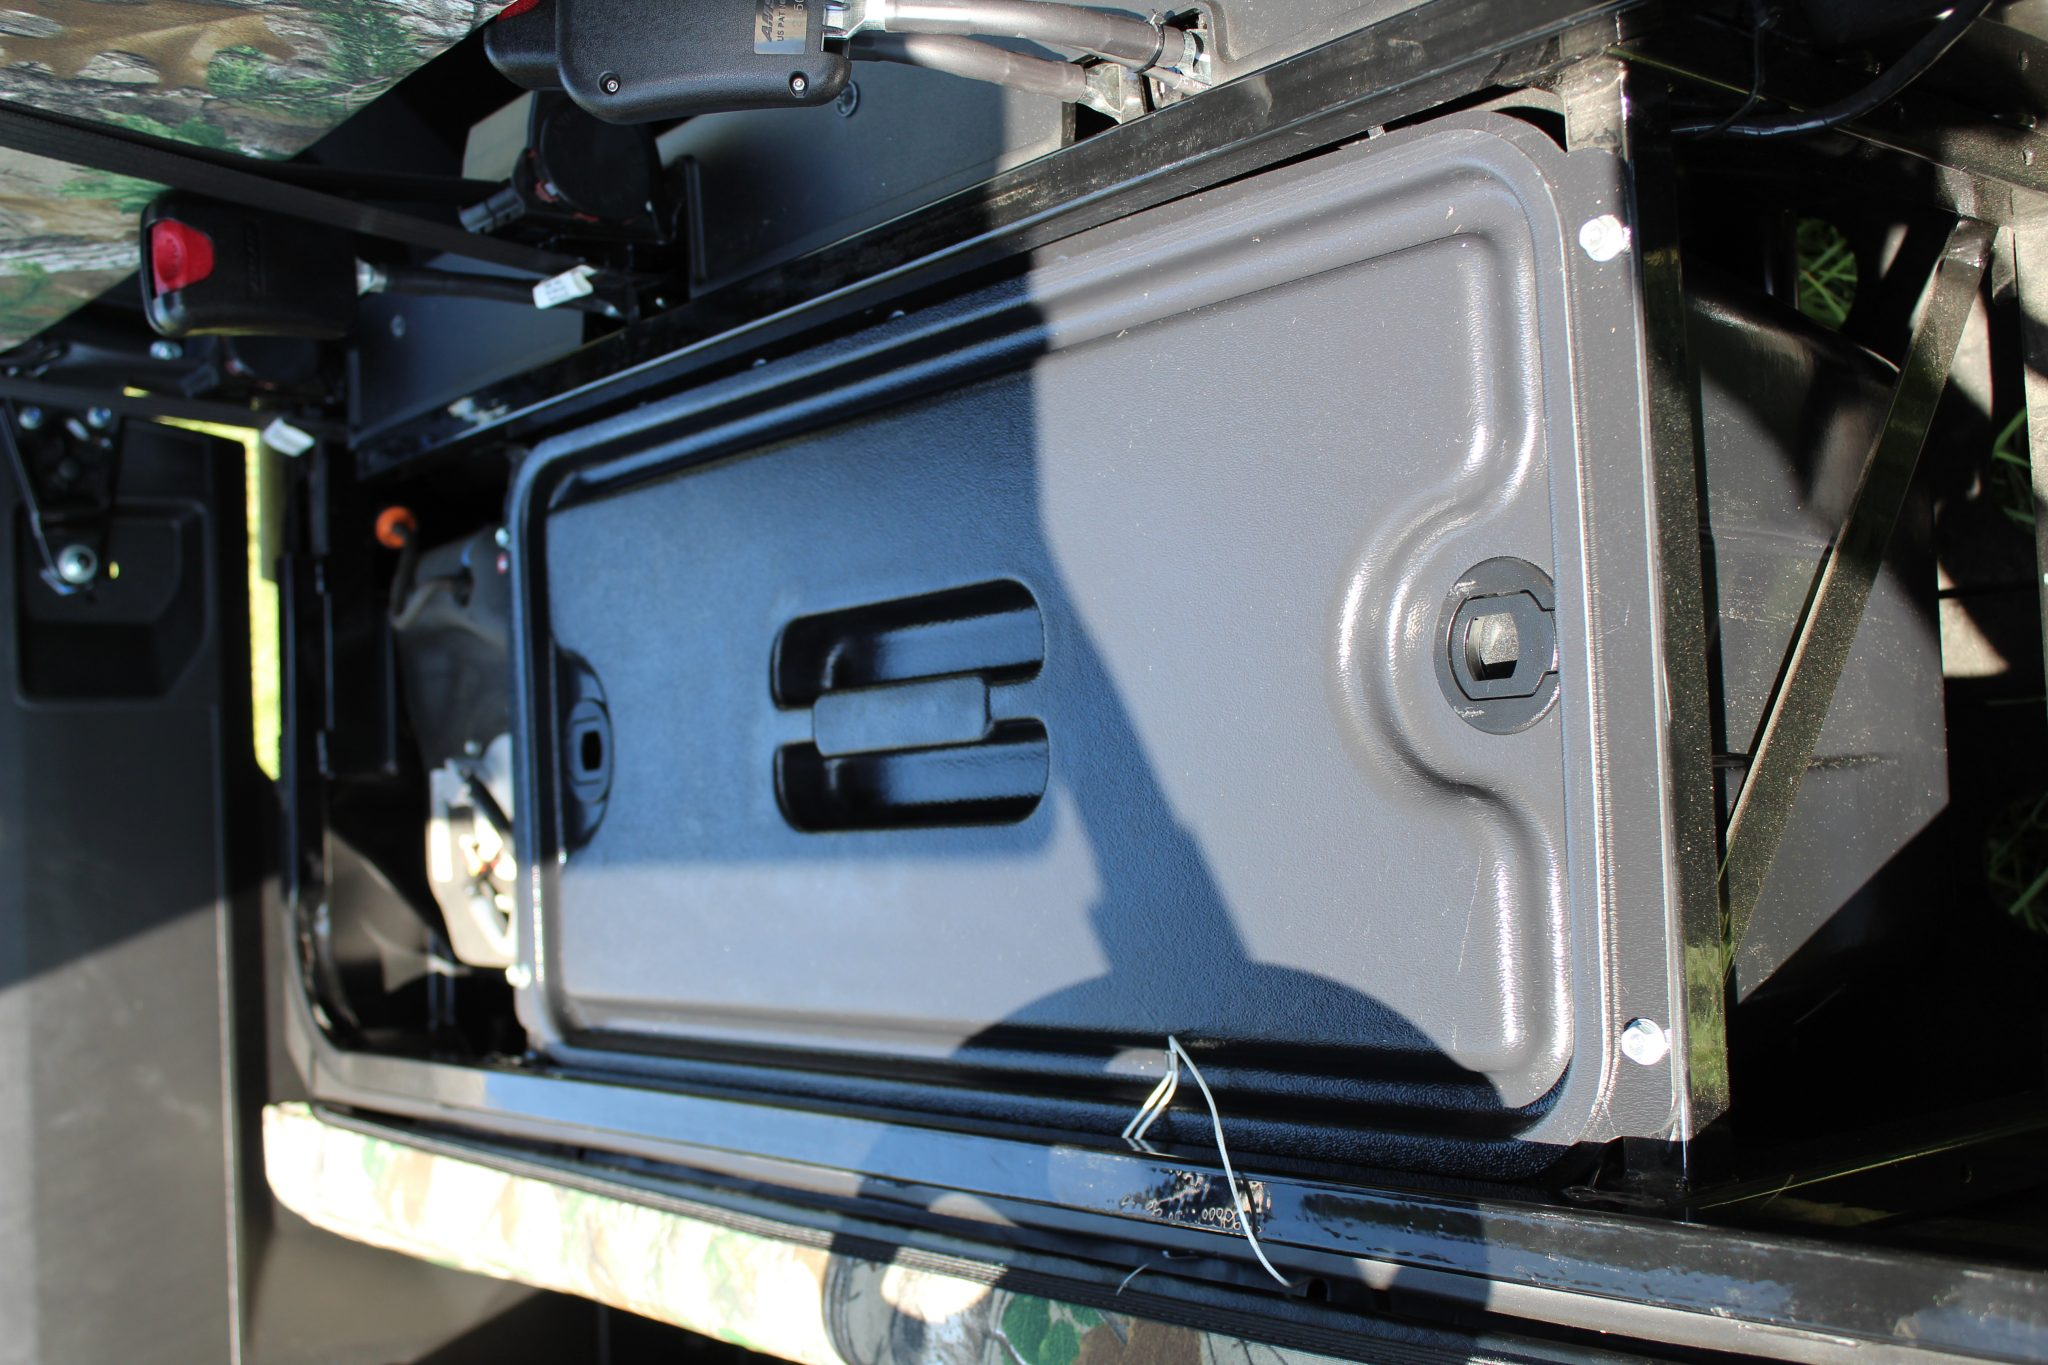 Storage Compartment Under Seat Mule Pro Fxt Utvproducts